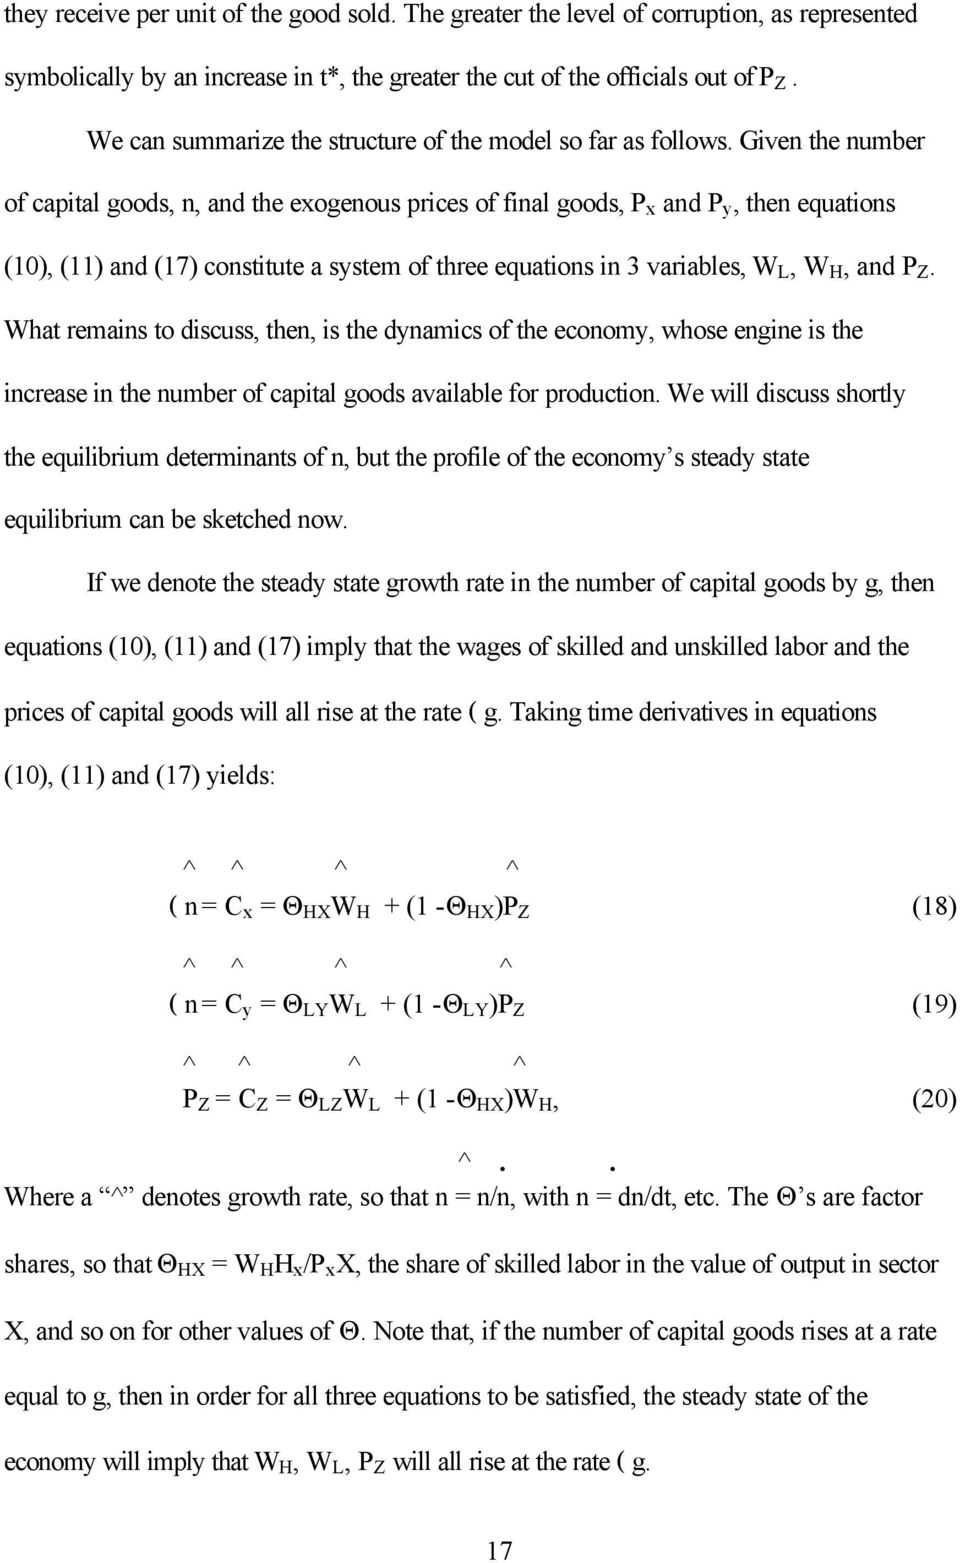 Given the number of capital goods, n, and the exogenous prices of final goods, P x and P y, then equations (10), (11) and (17) constitute a system of three equations in 3 variables, W L, W H, and P Z.